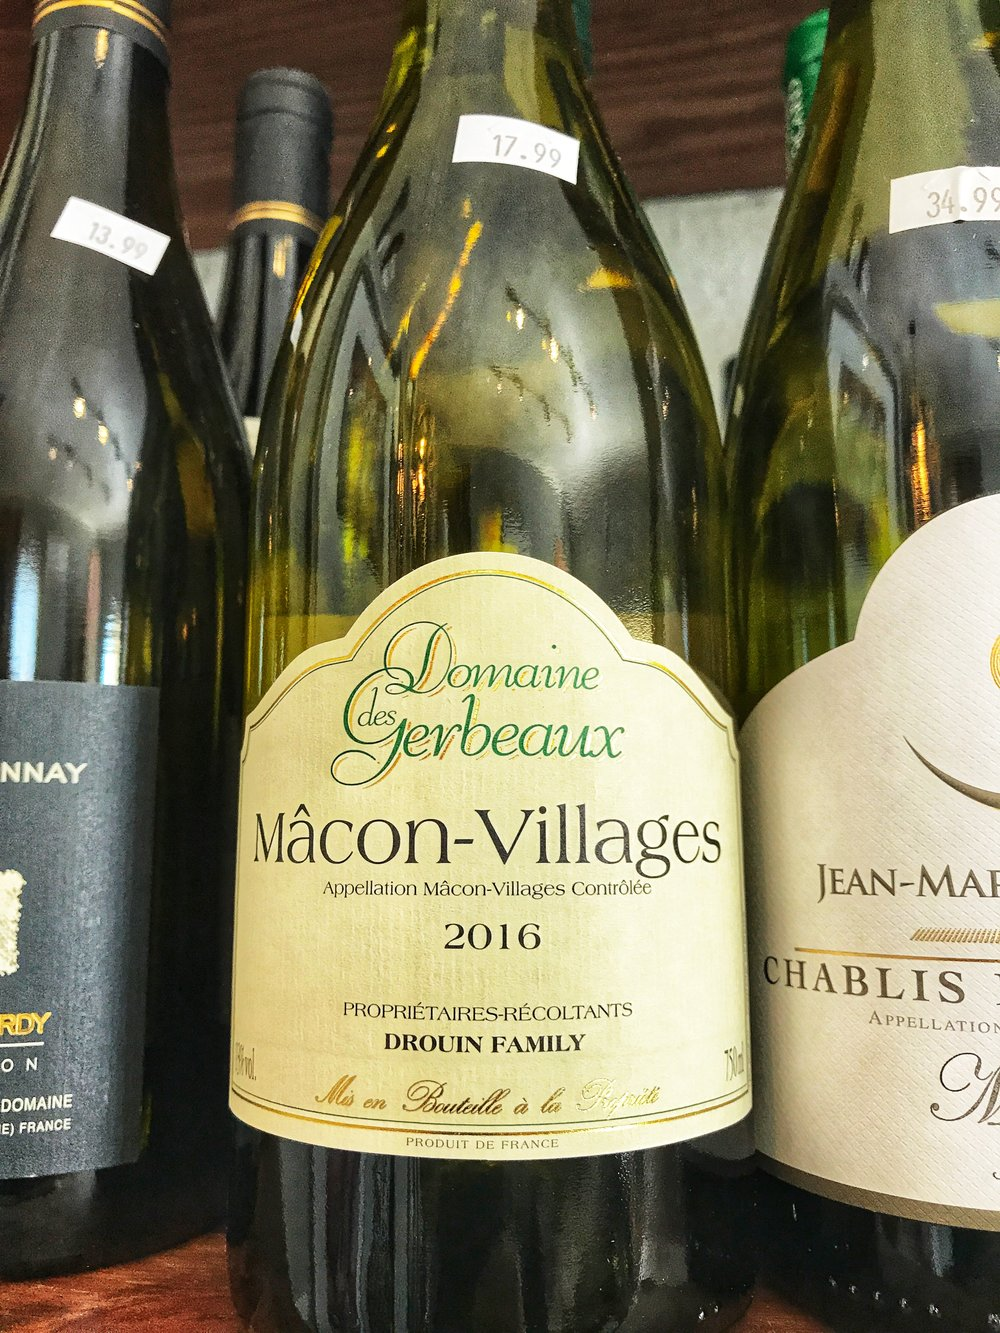 2016 Domaine Gerbeaux Mâcon-Villages $17.99 - Only about 200 cases (all biodynamically grown) made from young vines. Clean, fresh and nervy Chardonnay. Domaine des Gerbeaux is a small estate created in 1896 by Jean-Michel Drouin's grandfather Jacques Charvet, thus the high end cuvee in his honor. Domaine des Gerbeaux was cre- ated by his son Xavier, the 5th generation of winemakers with- in the family. An estate of 17 acres located in the village of Solutre, dependent of the commune of Fuisse and the small village of Pouilly. The average age of the vines is between 35 and 45 years old with parcels as old as 90 years.